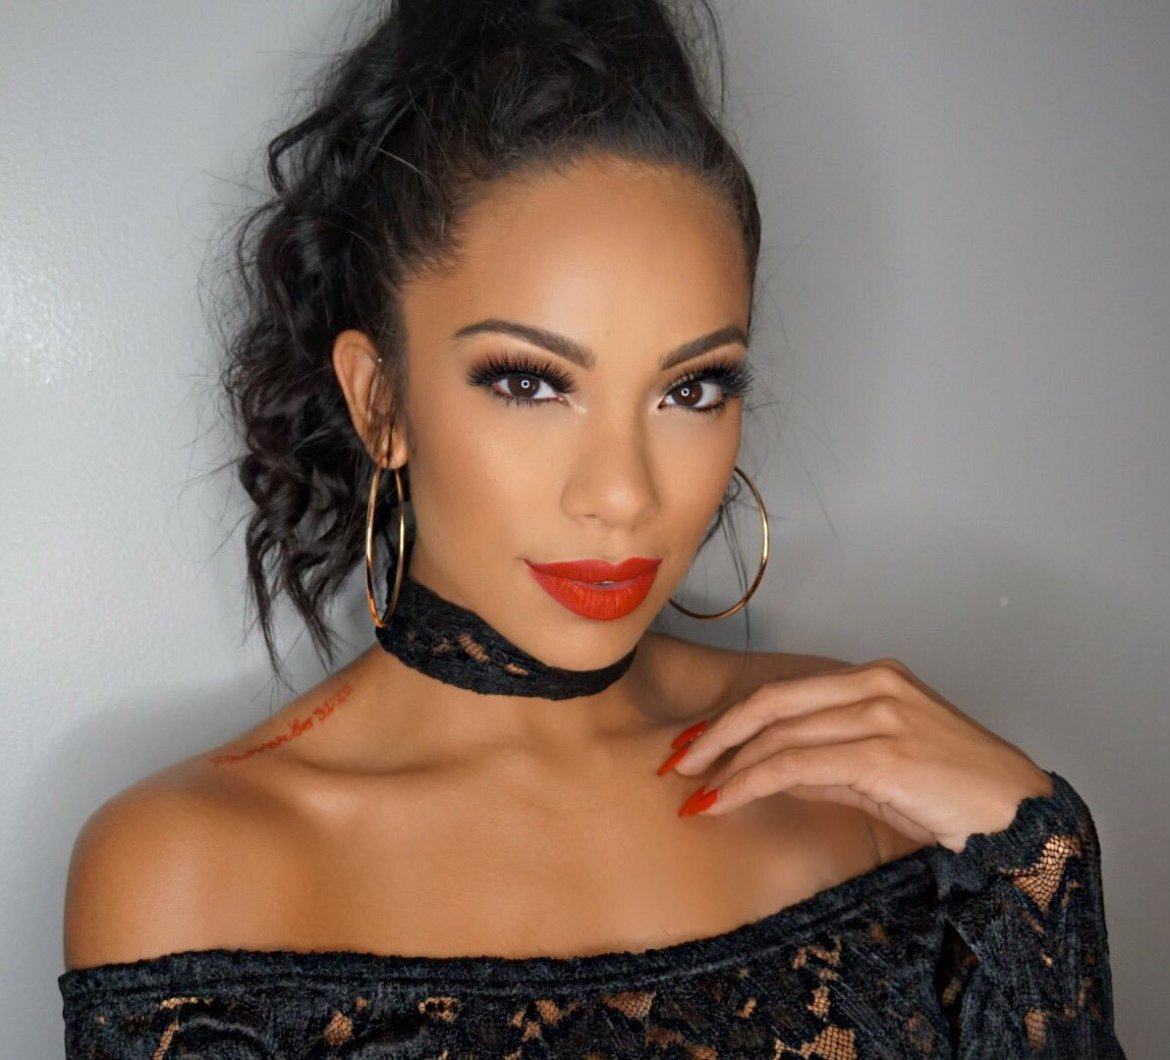 erica-mena-amazes-in-this-pair-of-tight-jeans-check-out-her-best-asset-that-keeps-safaree-happy